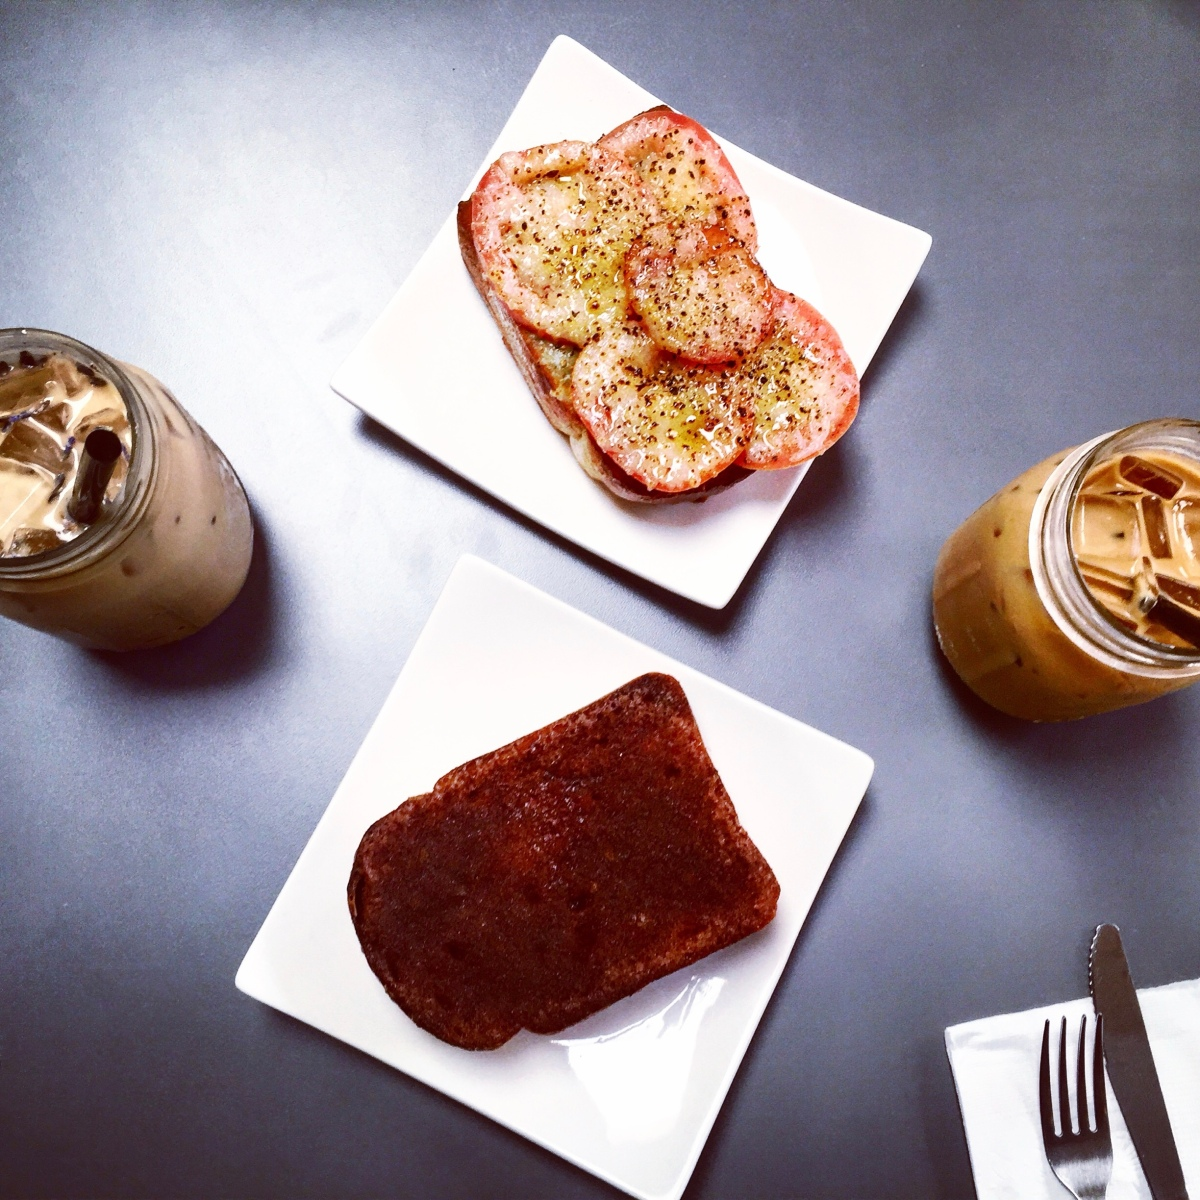 Top 6 Bakeries You Have to Eat at in San Francisco